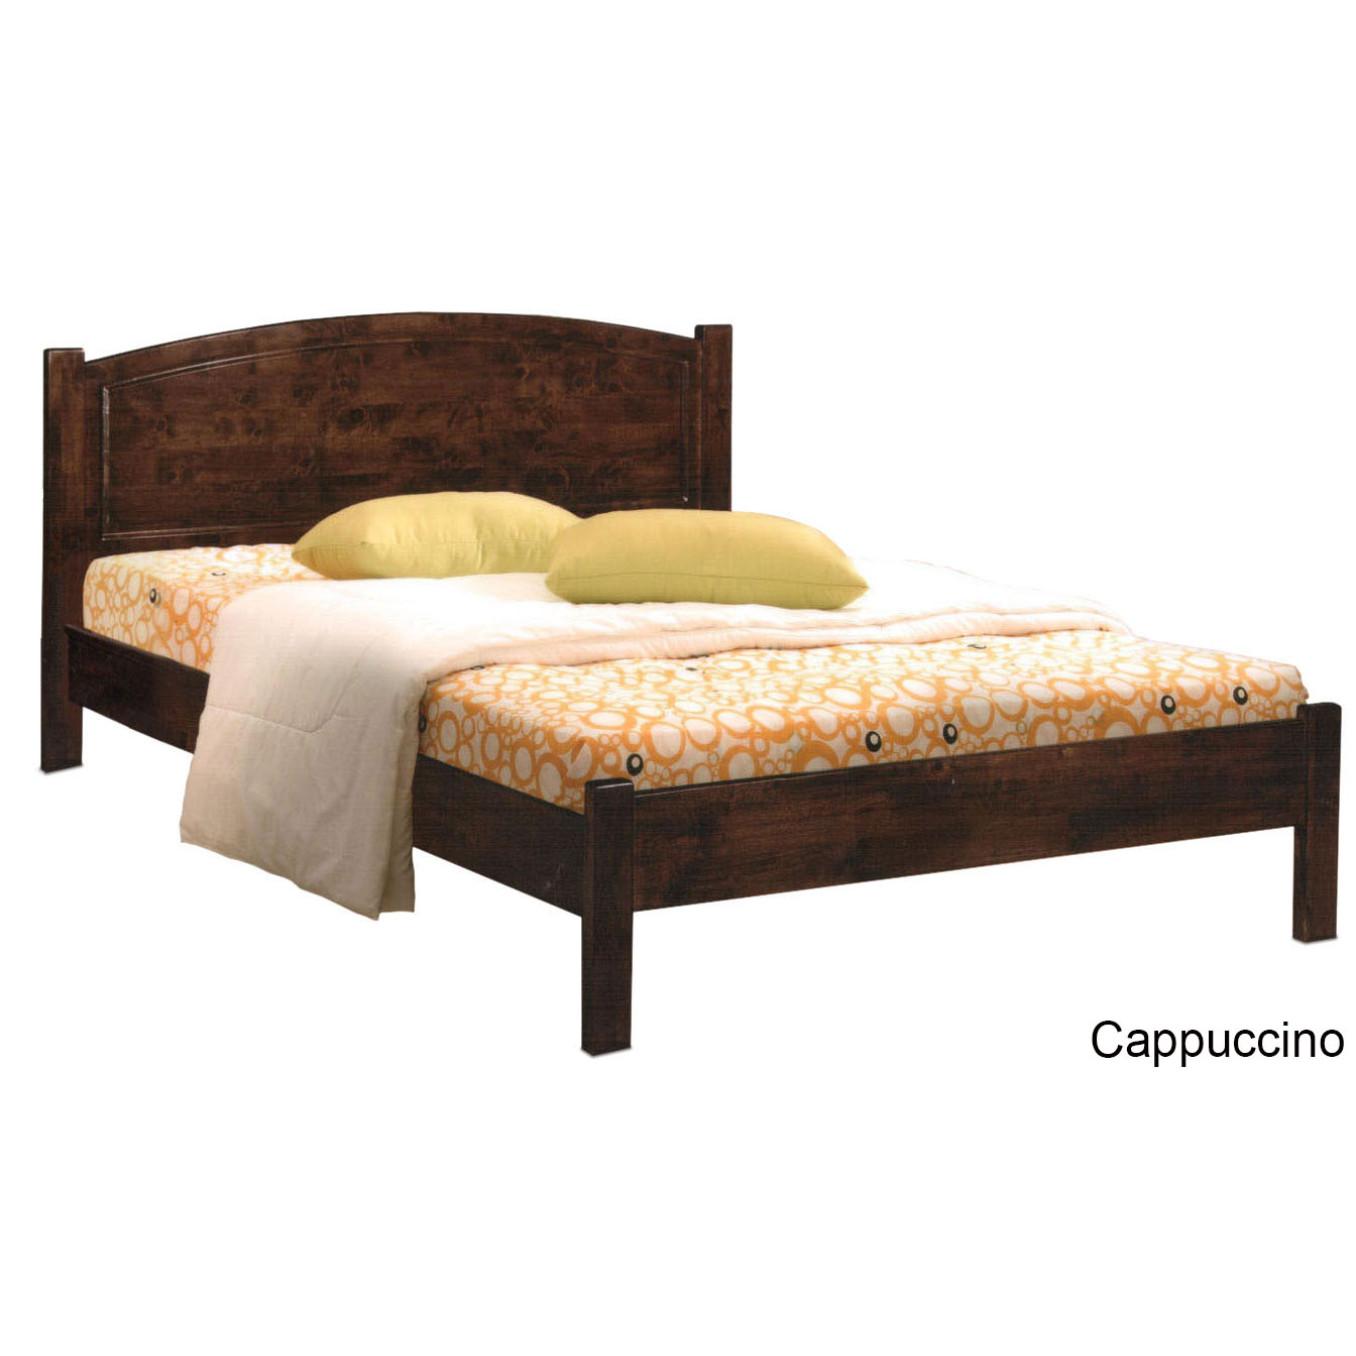 Wooden Bed: Furniture & Home Décor